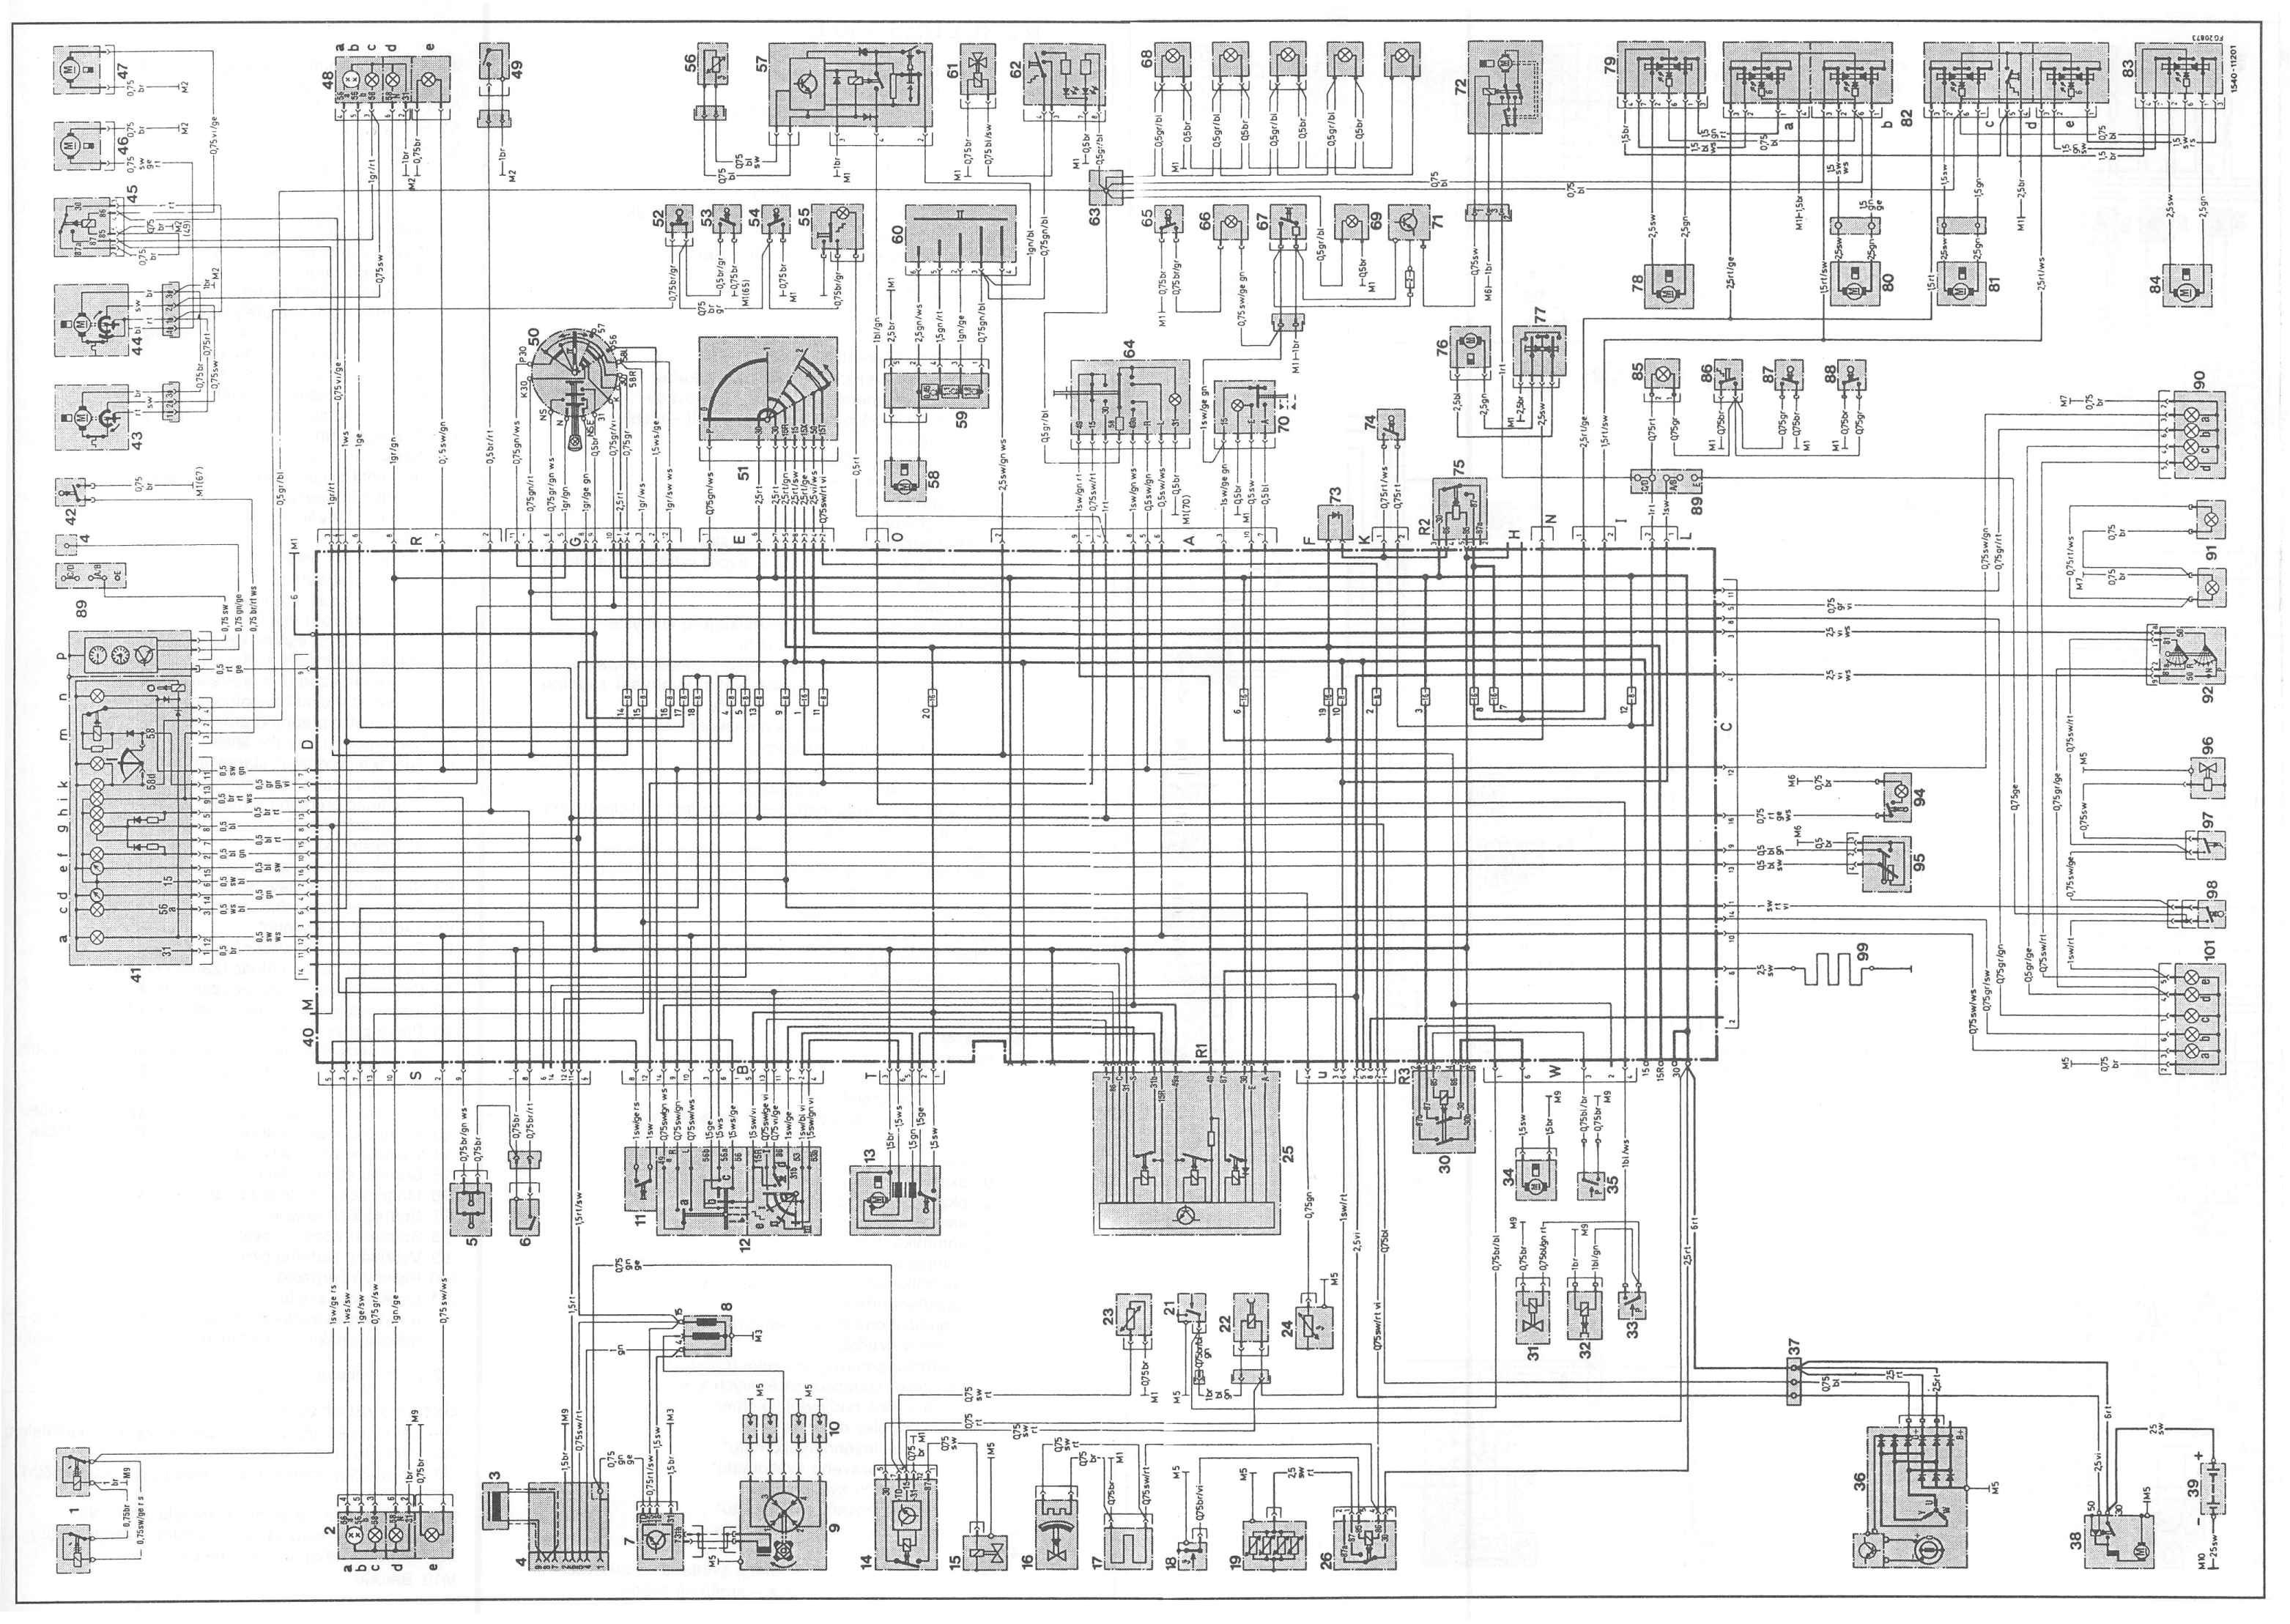 1999 C280 Wiring Diagram on 1996 vw cabrio fuse box diagram